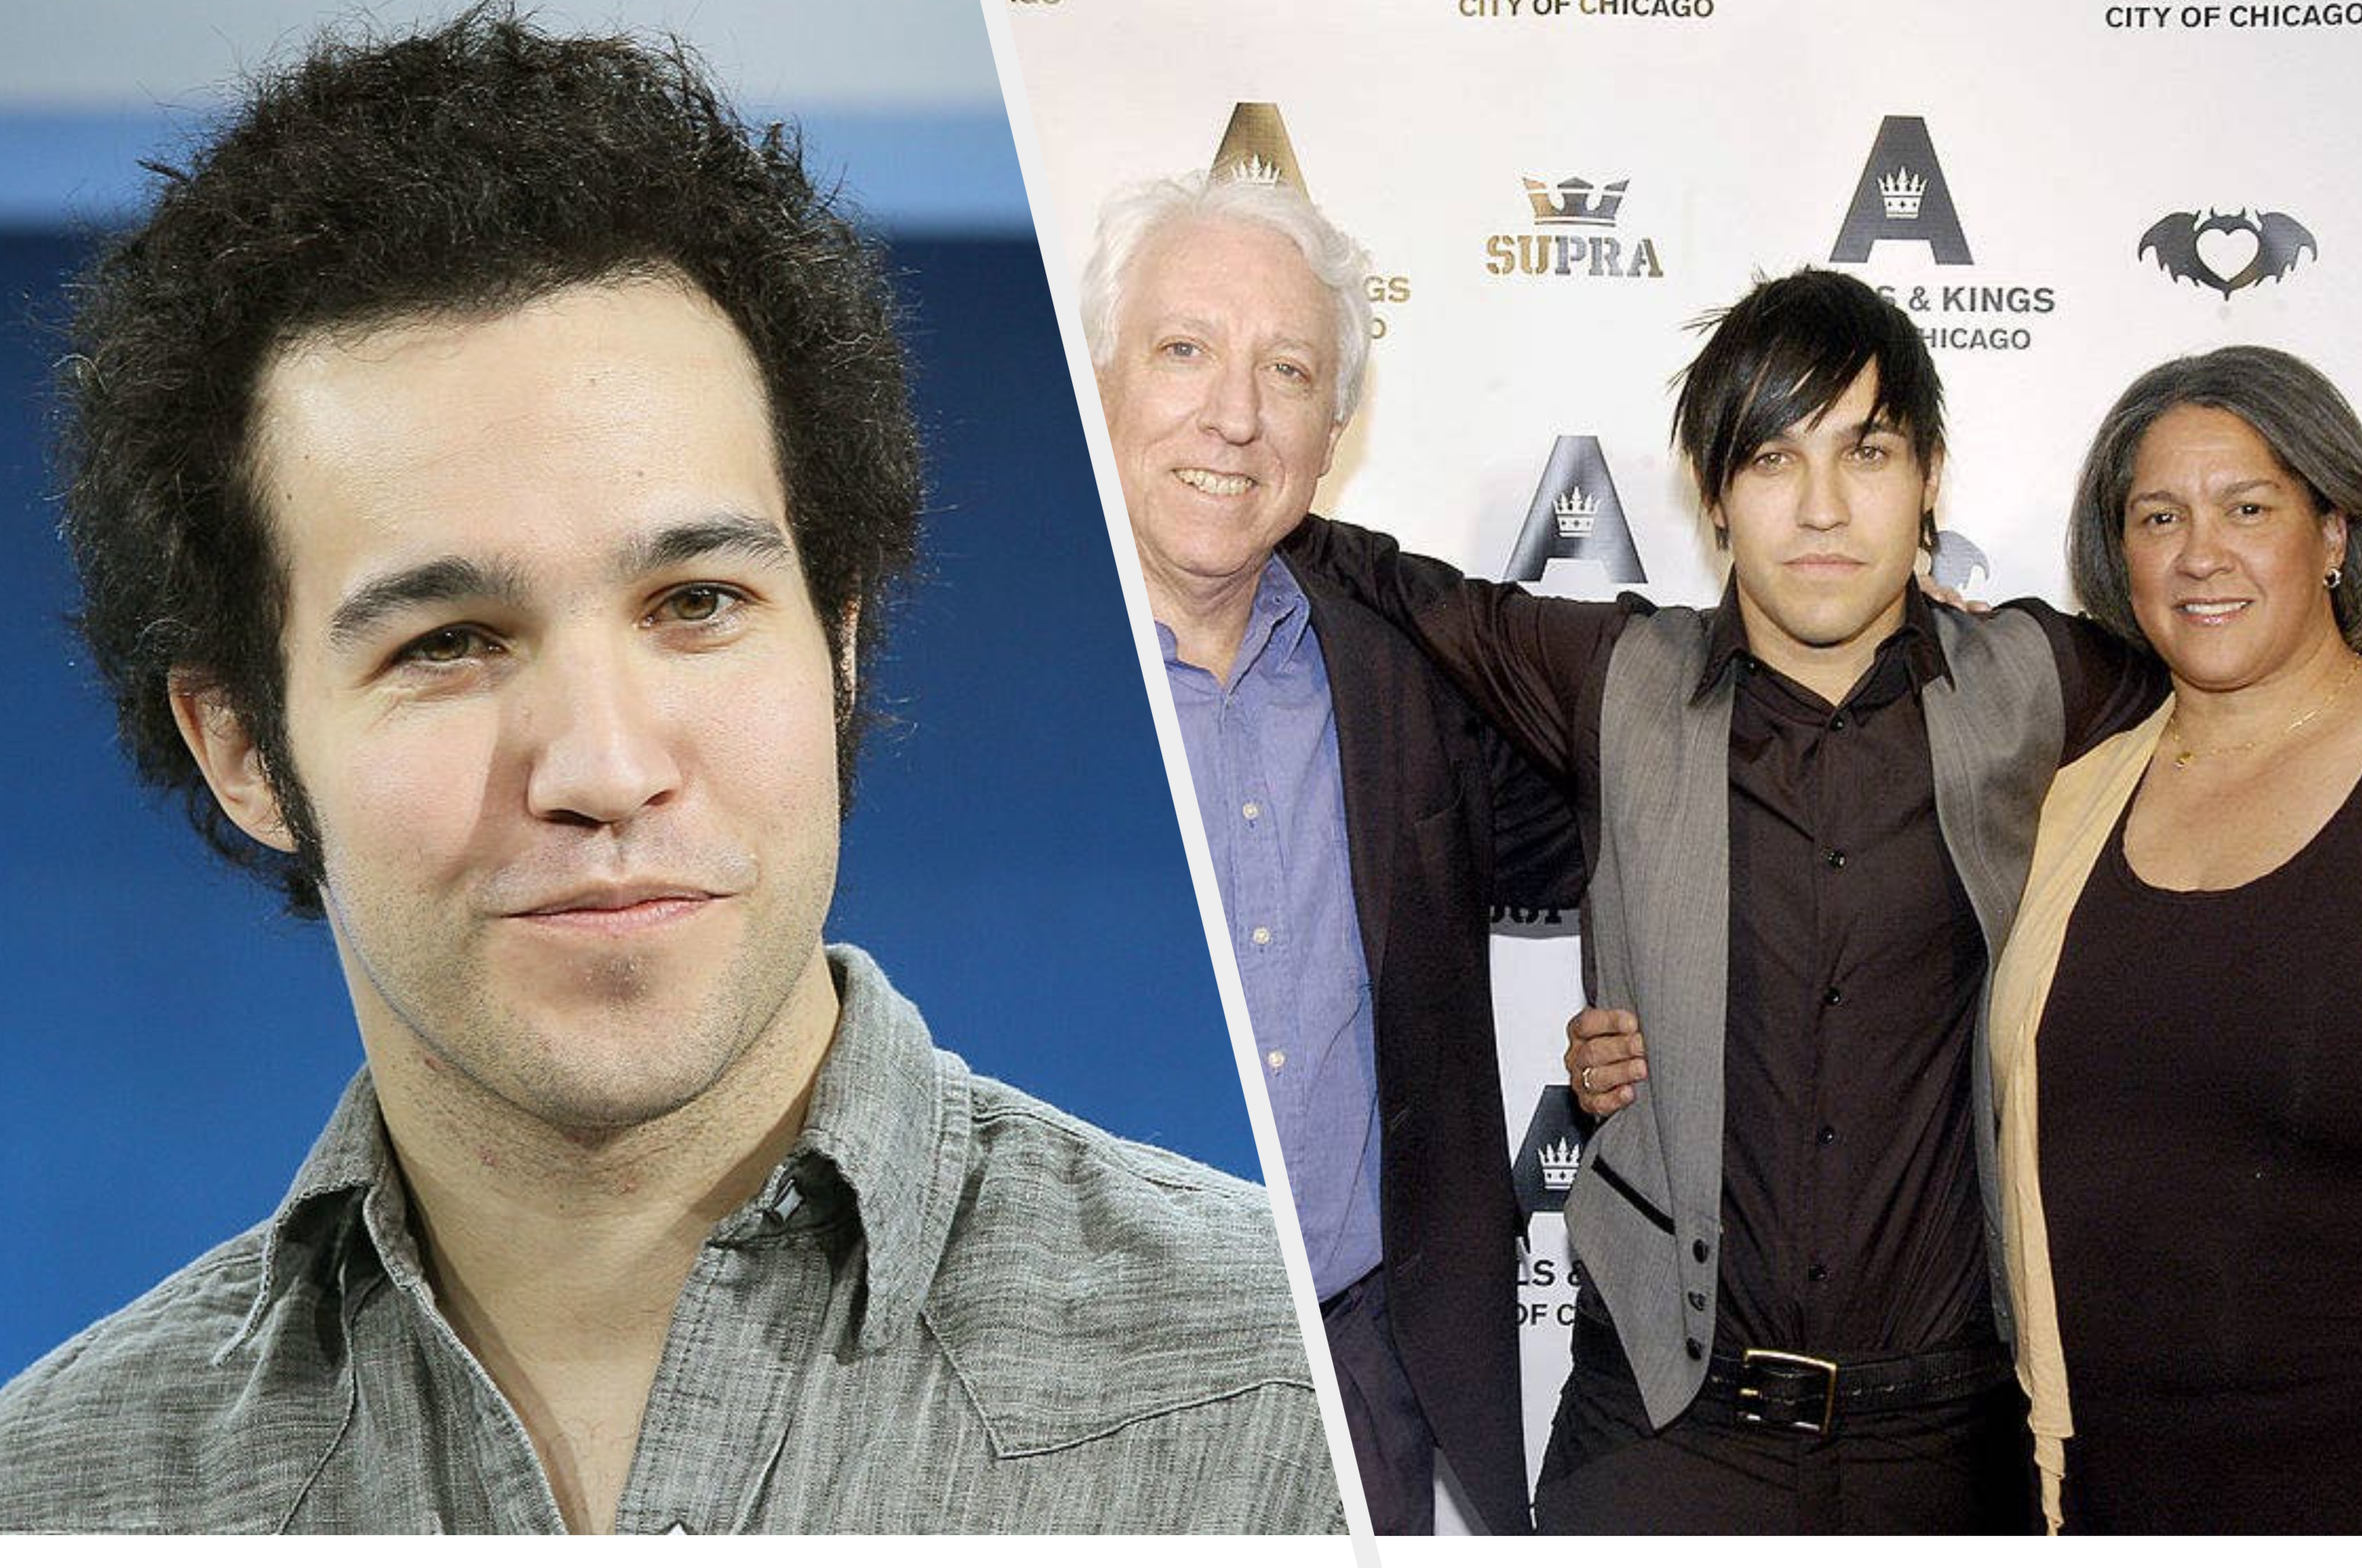 Hot biracial women big ass Pete Wentz Is Biracial And Many People Are Just Finding Out About It